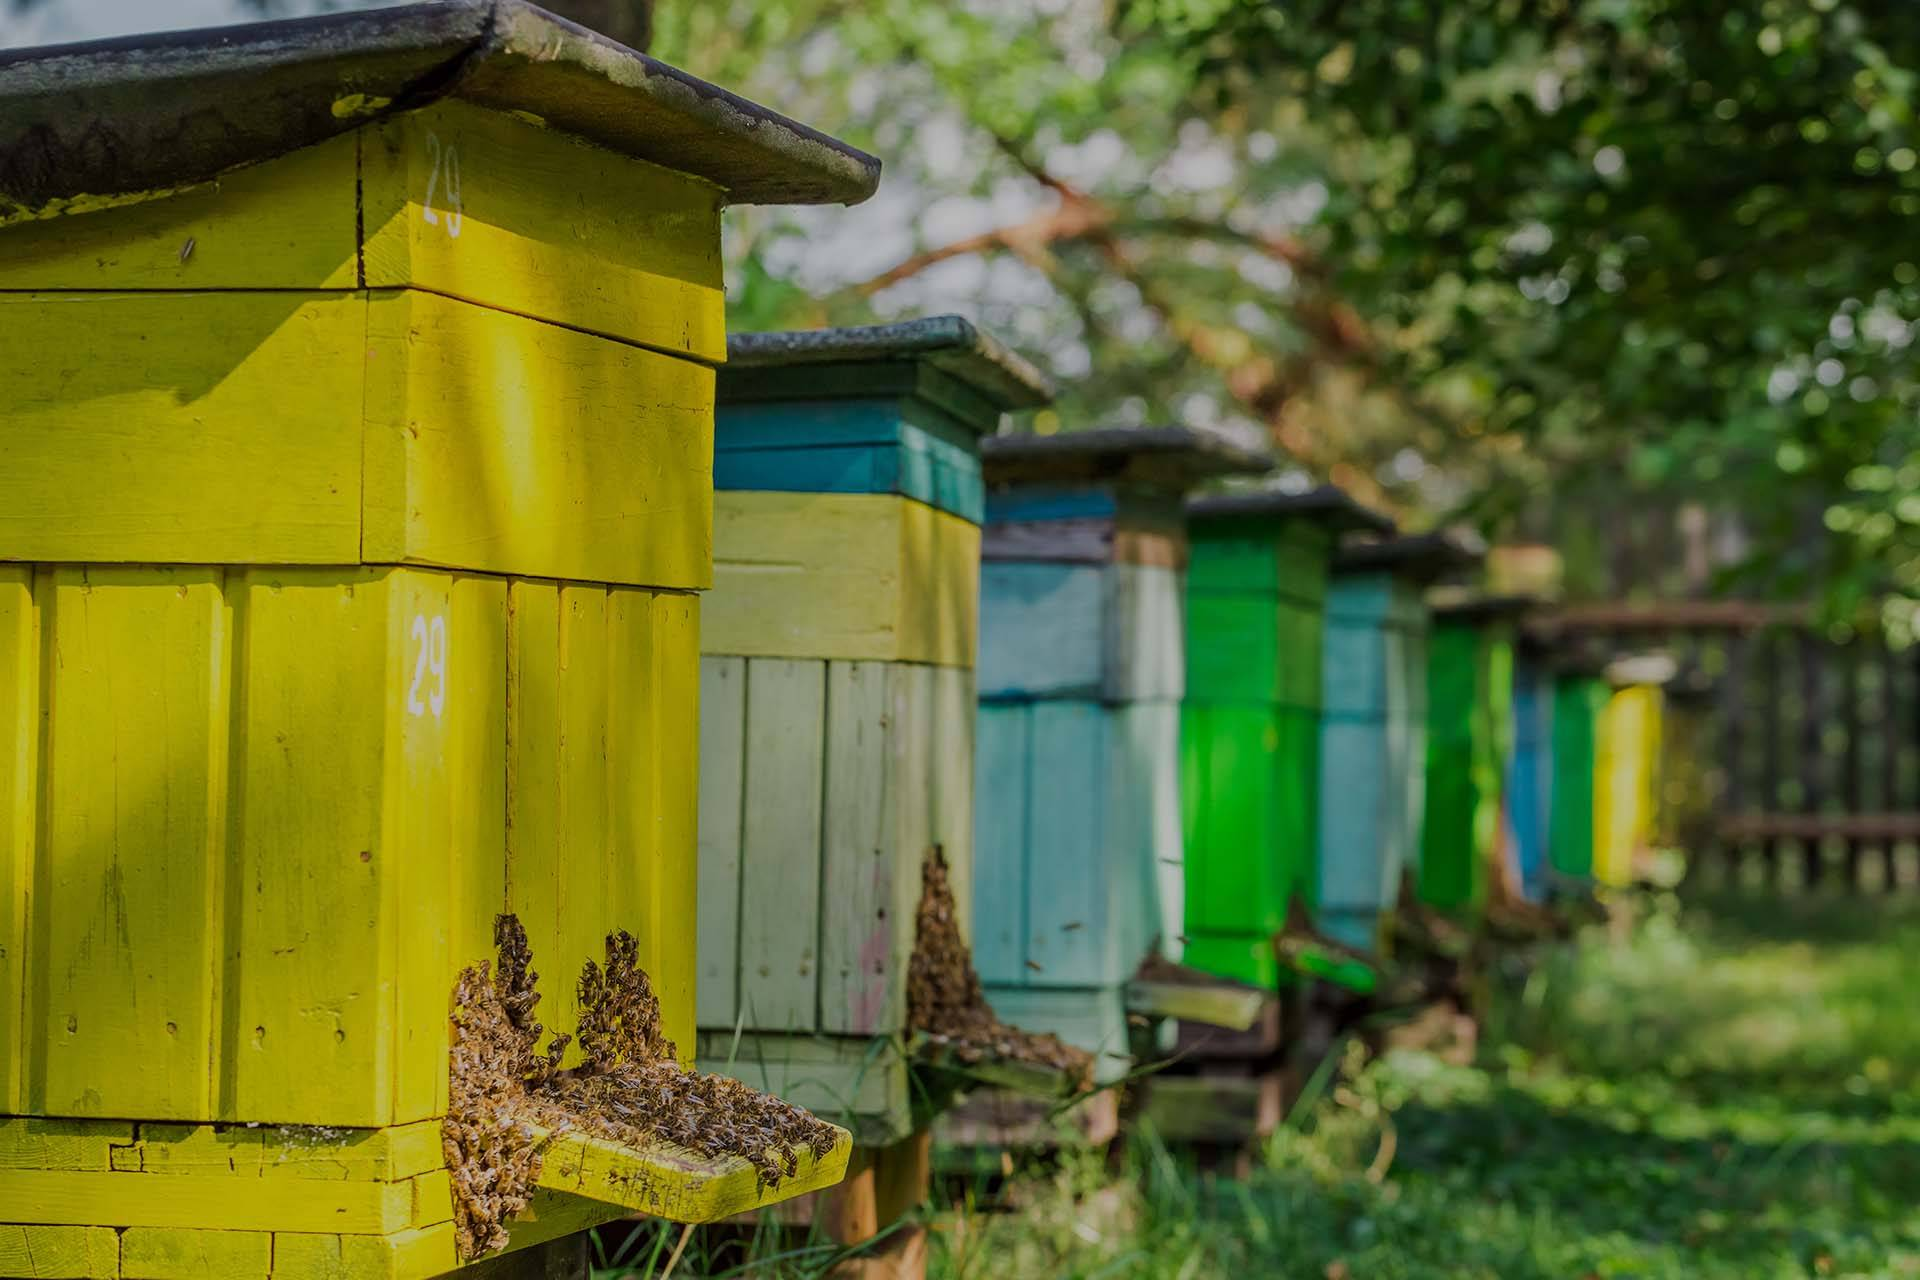 PACKAGE BEES, NUCS, AND QUEENS - NOW ON SALE